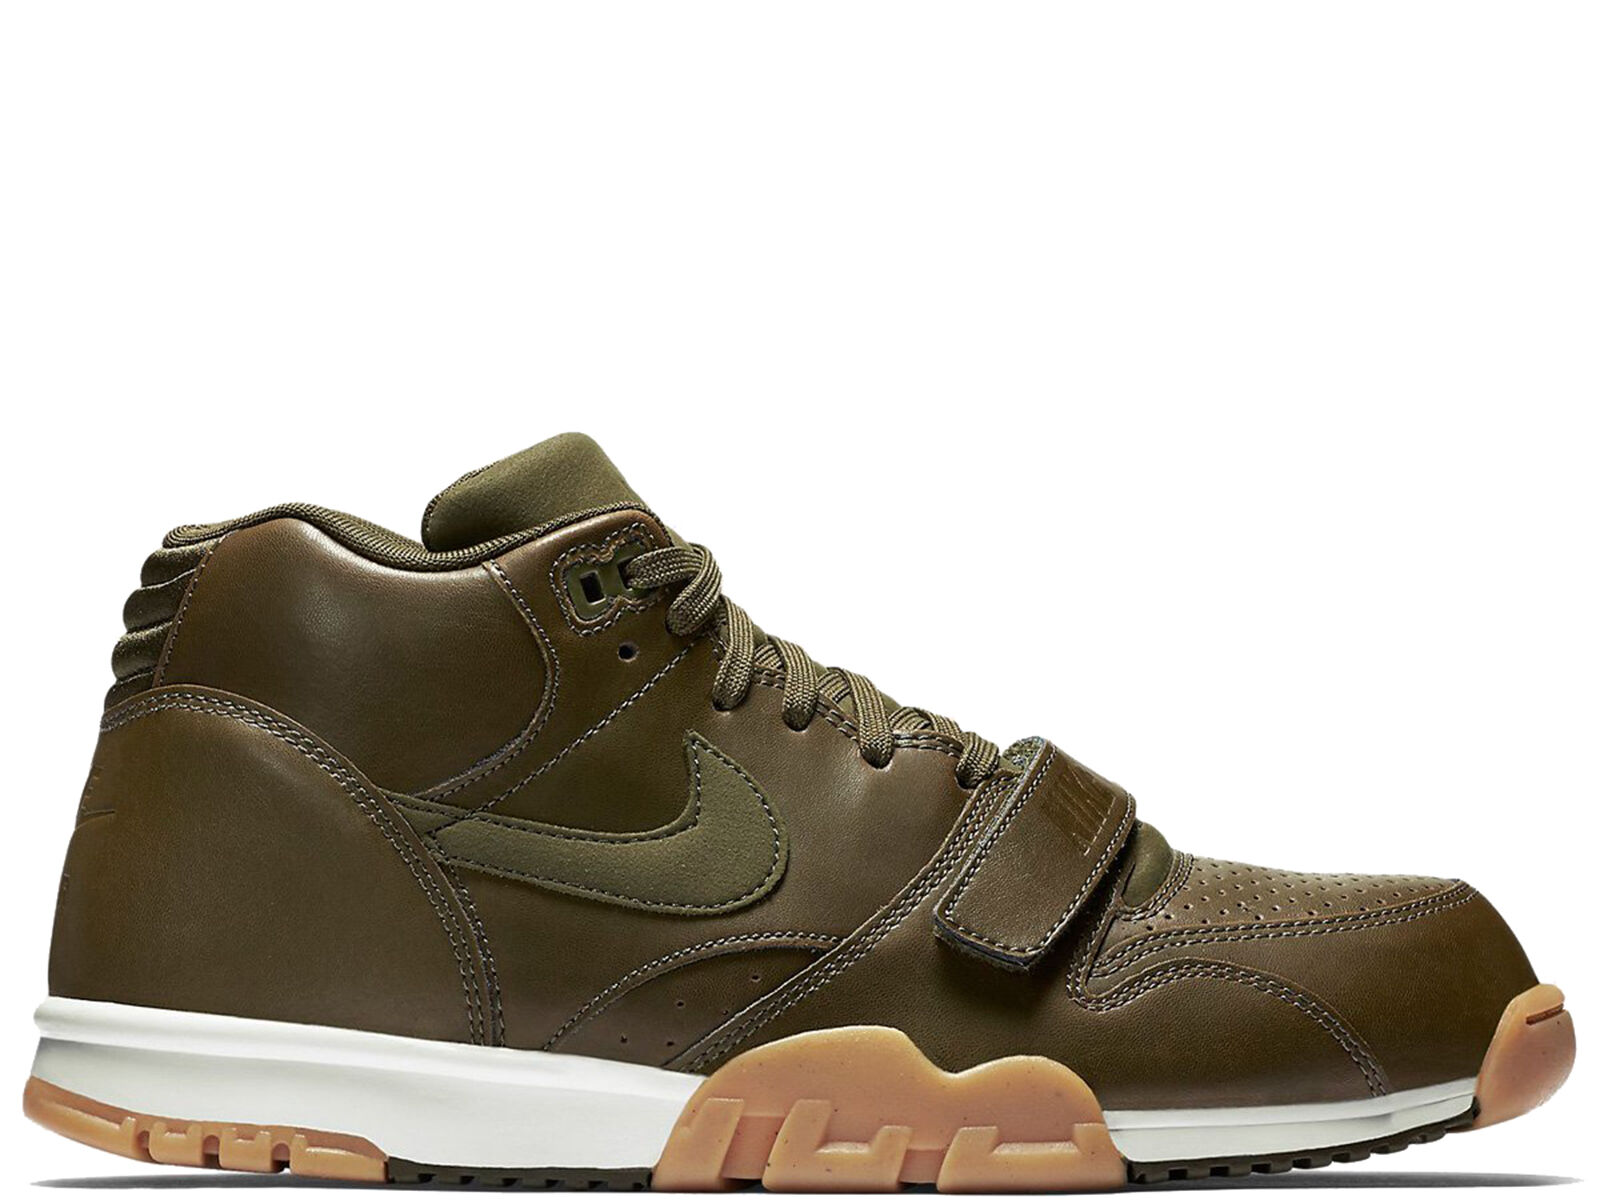 Brand New Nike Air Trainer 1 Mid Men's Athletic Fashion Sneakers [317554 300]